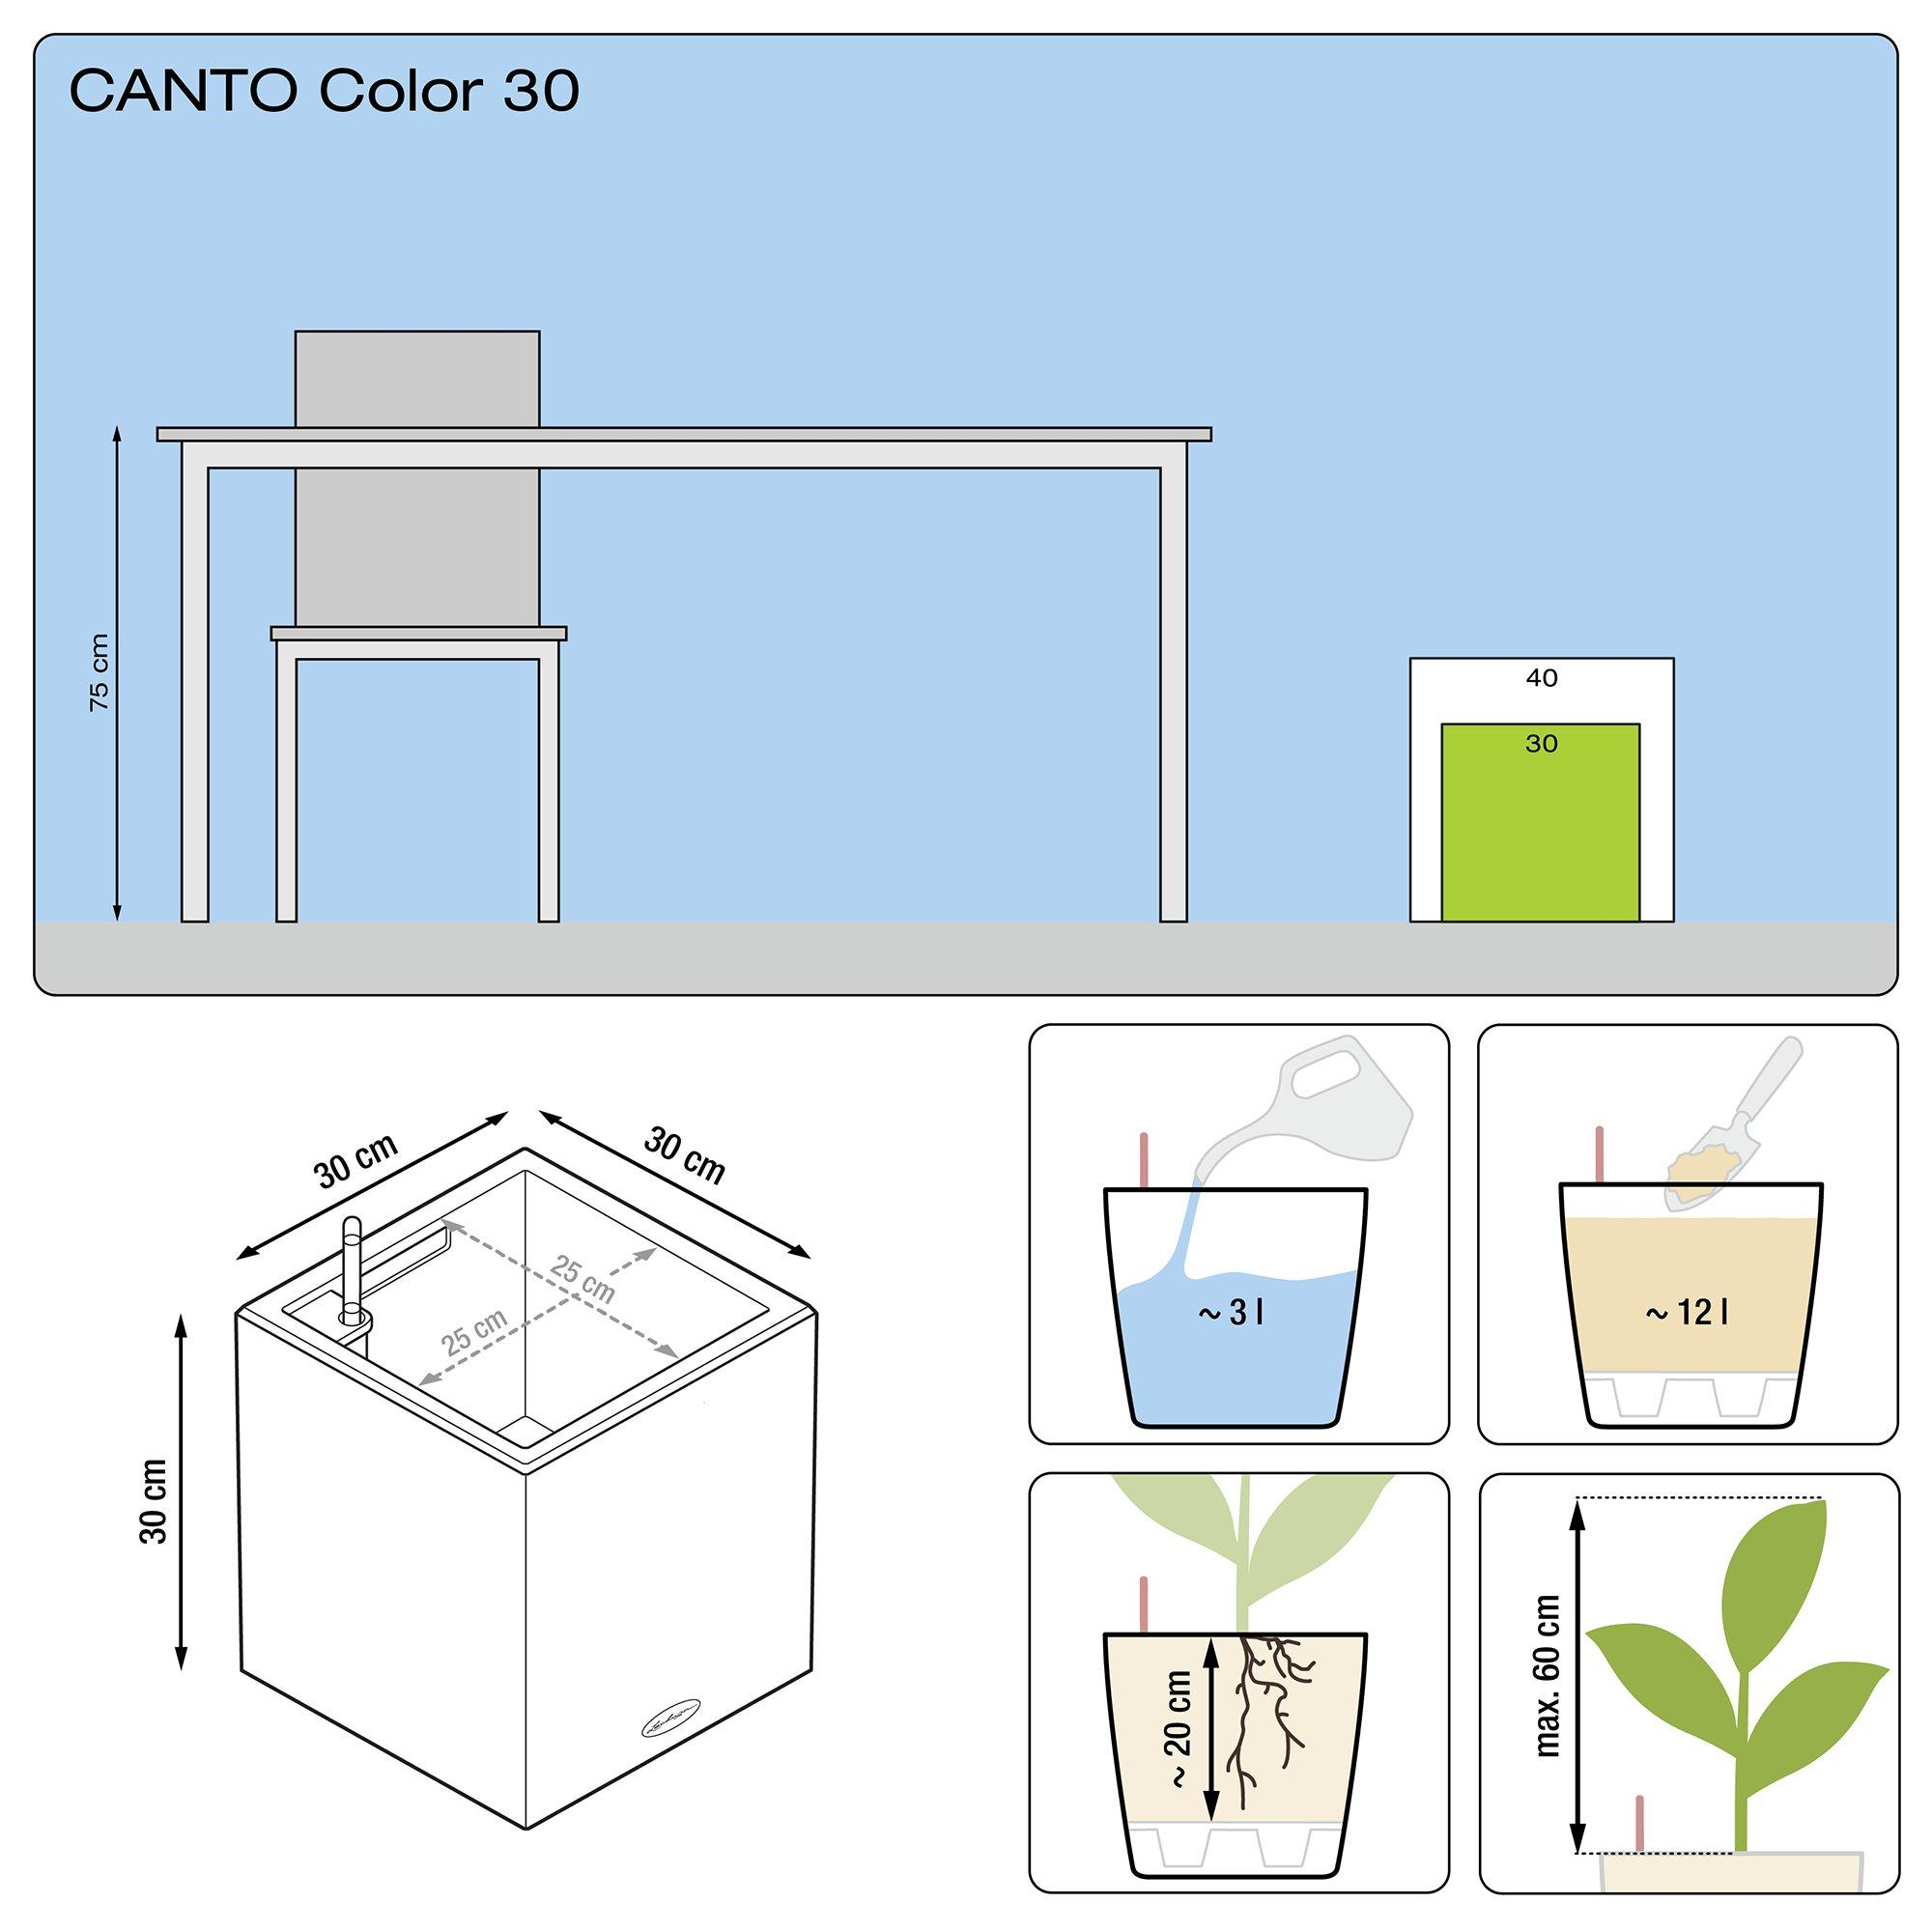 le_canto-color-wuerfel30_product_addi_nz